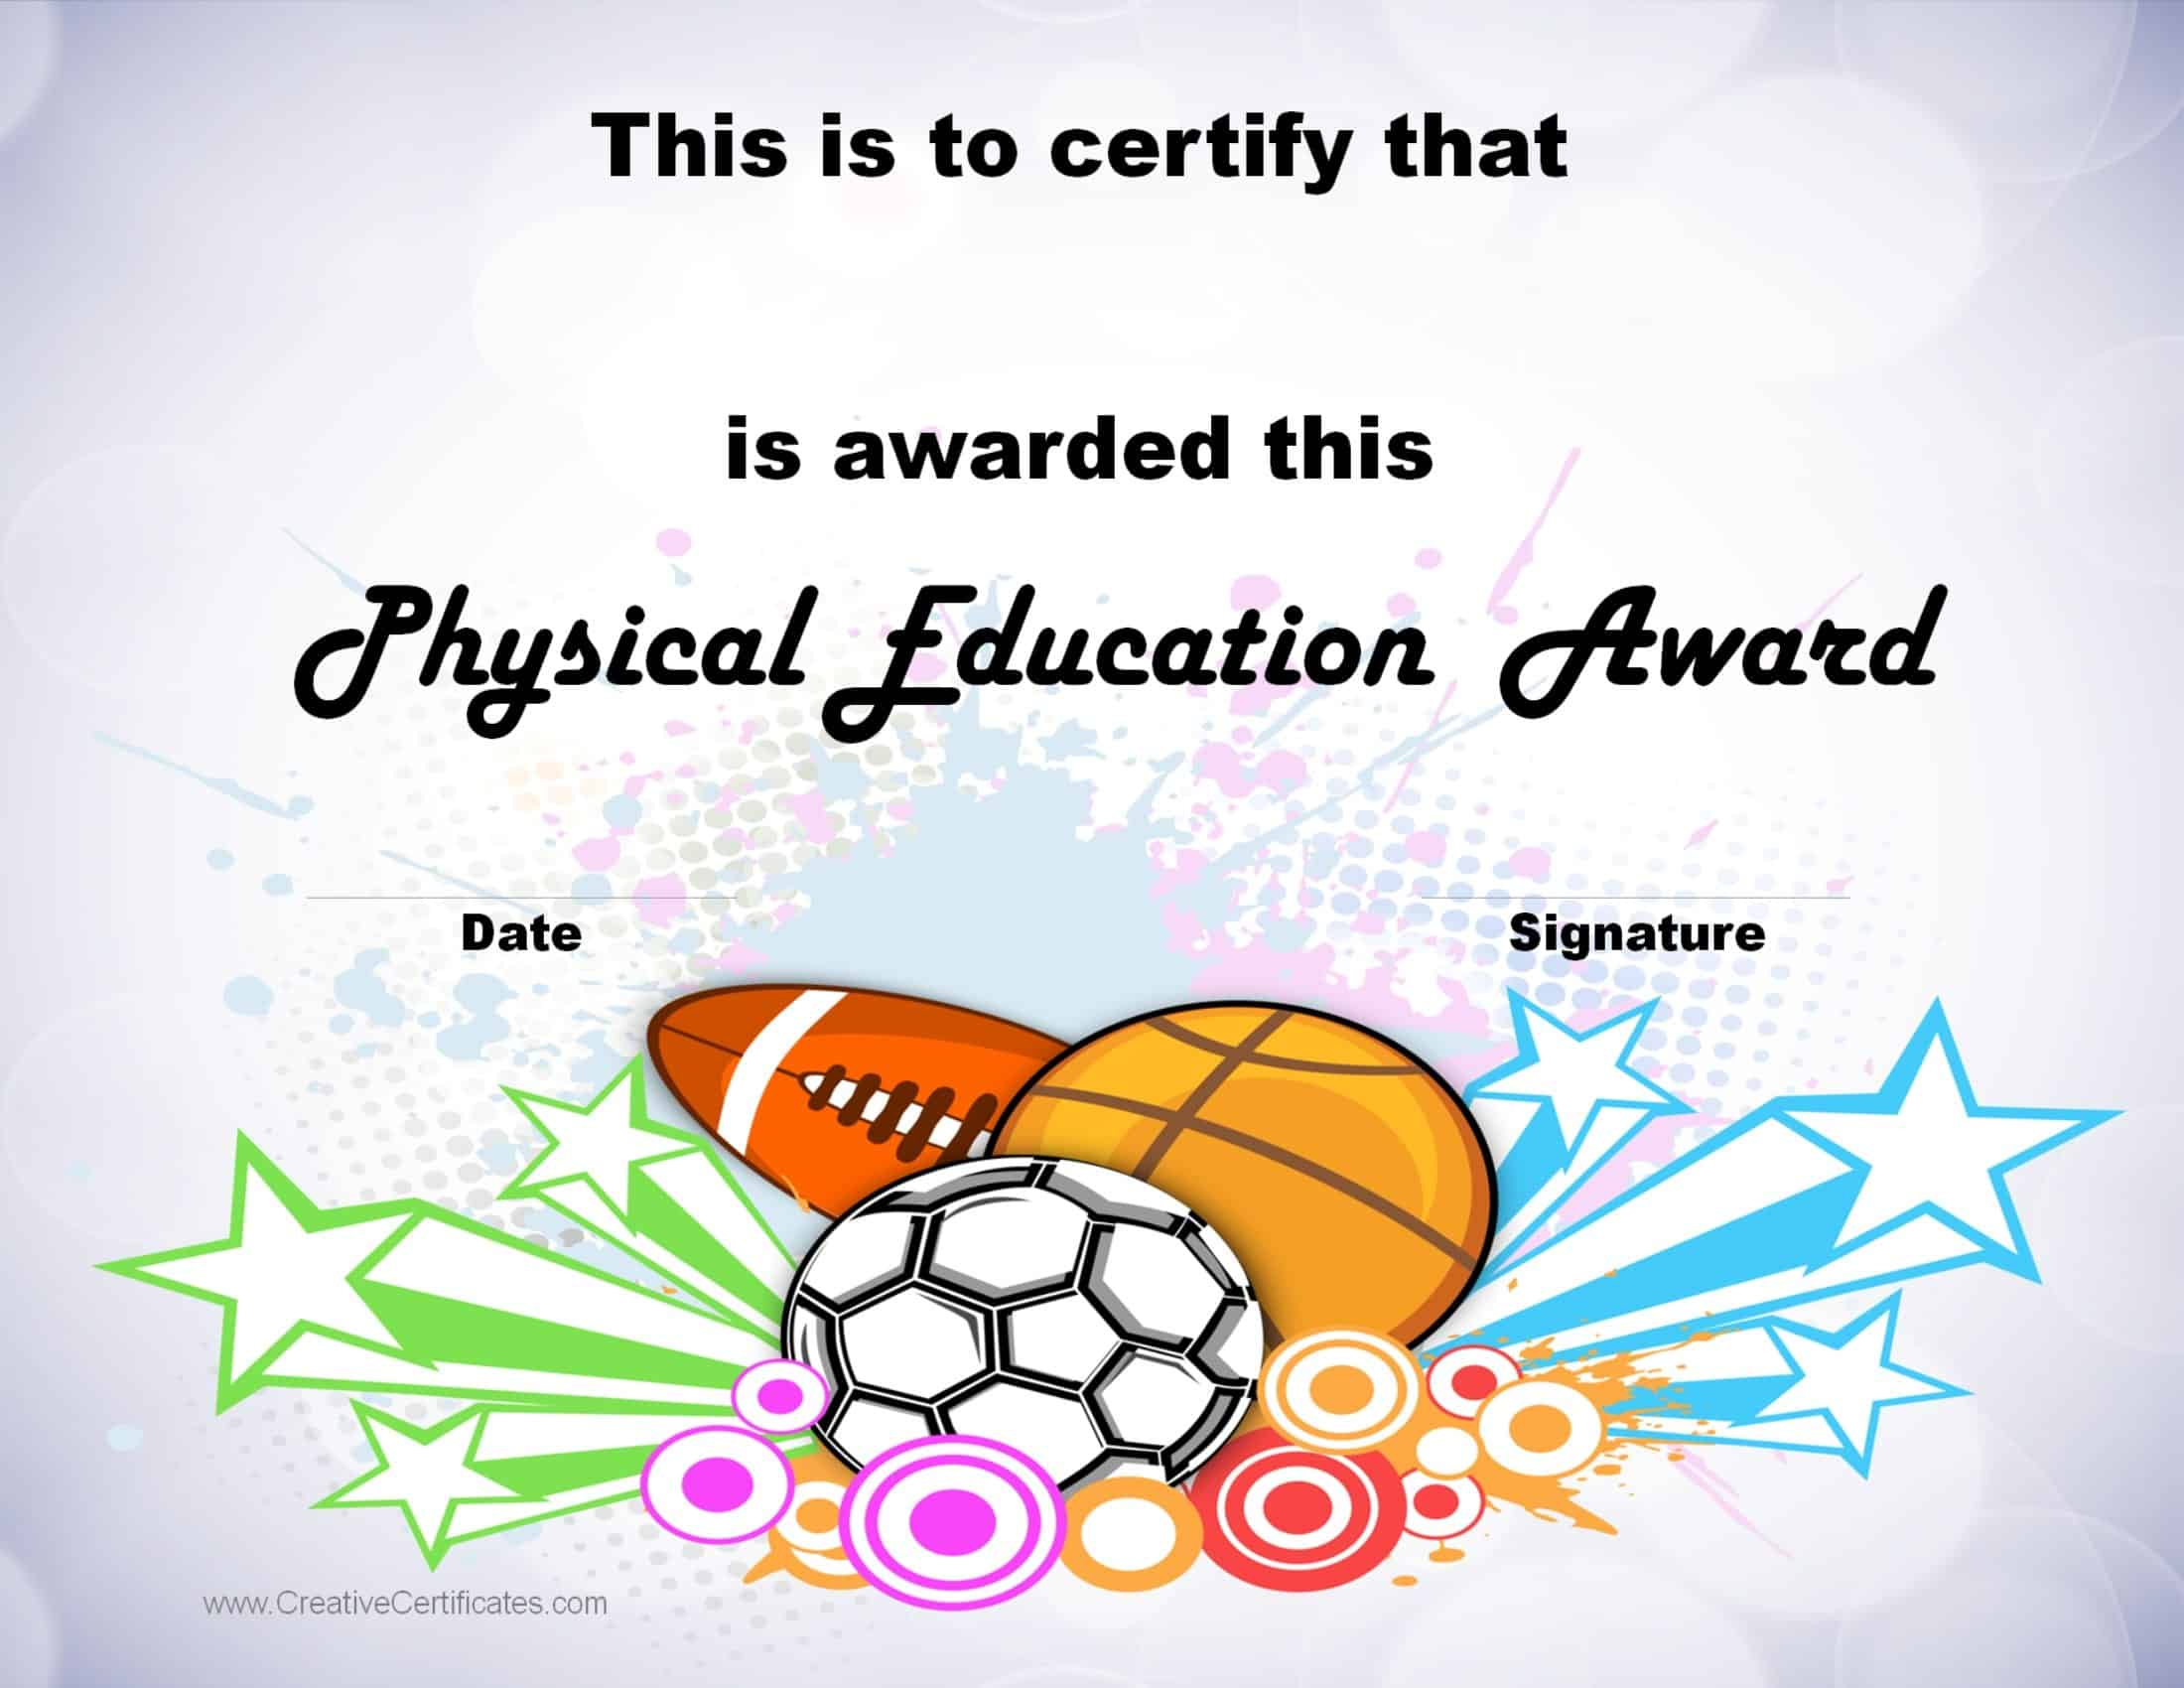 pe certificate  Physical Education Awards and Certificates - Free